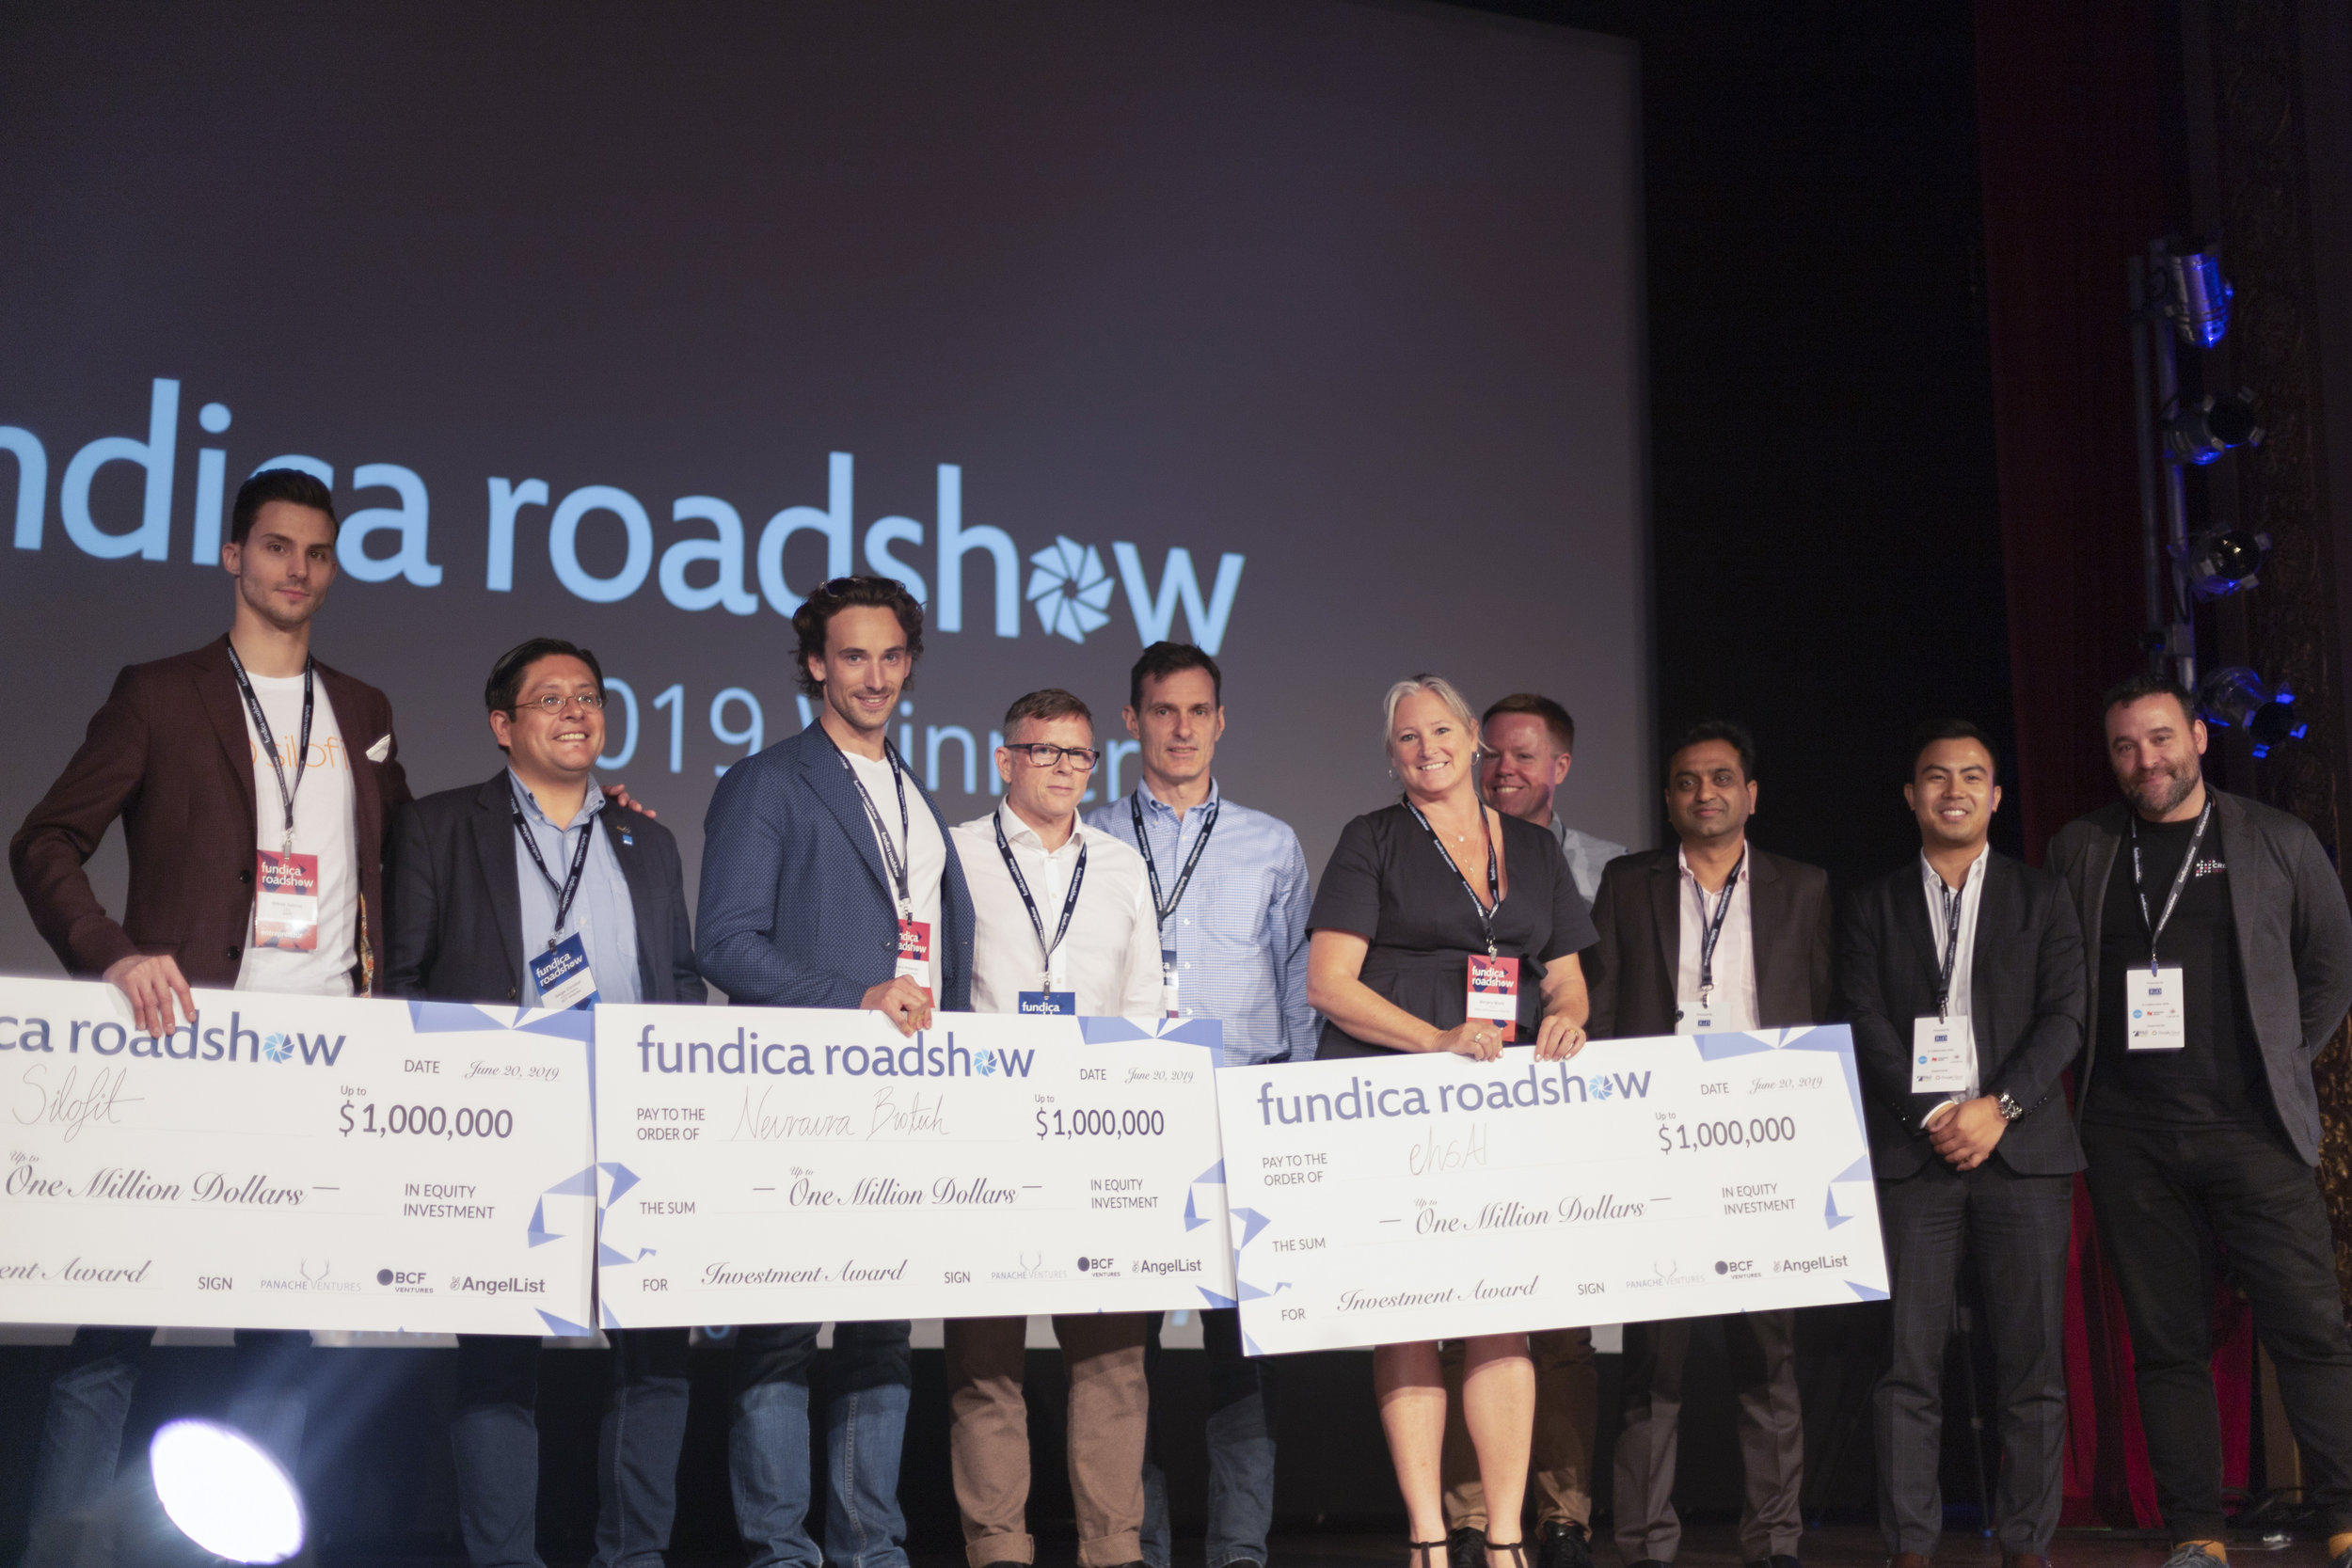 Our winners and investment partners. From left to right: Wilfred Valenta of Silofit, Sergio A. Escobar of BCF Ventures, Pierre Wijdenes of Neuraura, Jean-David Begin of AngelList, Mike Lee of Fundica, Margery Moore of ehsAI, Lee Carney of ehsAI, Nikhil Rodye of R&D Capital, Channt Chea of National Bank, and David Dufresne of Panache Ventures.